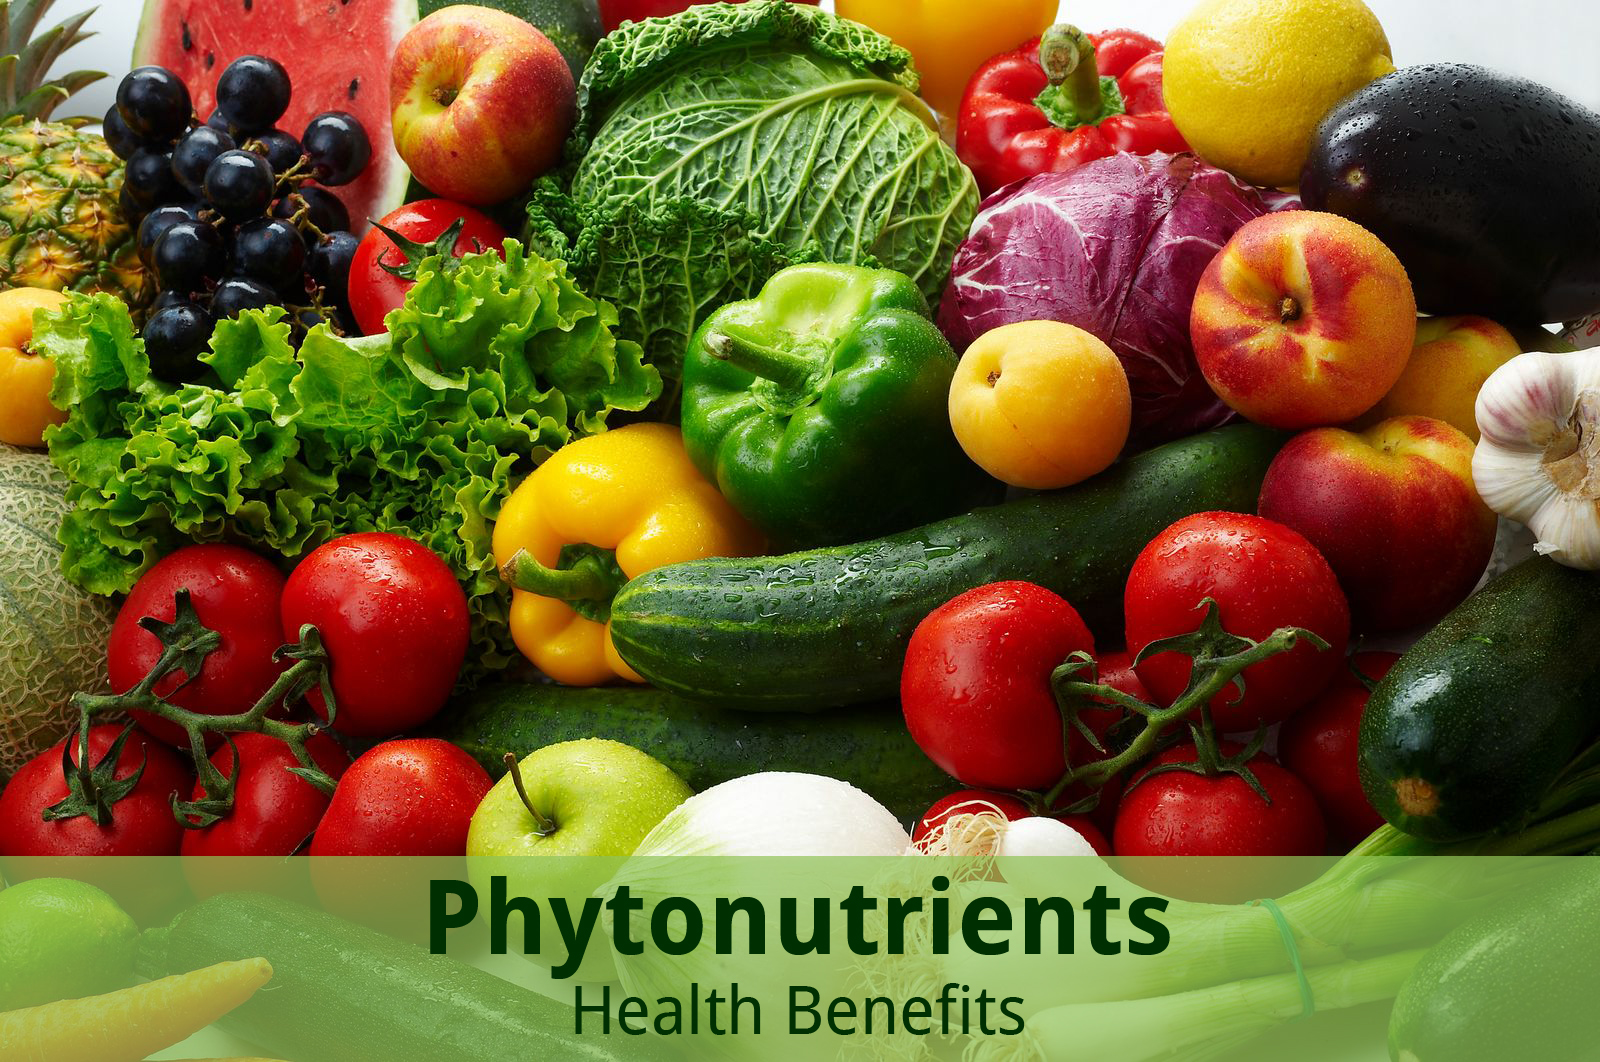 benefits of Phytonutrients